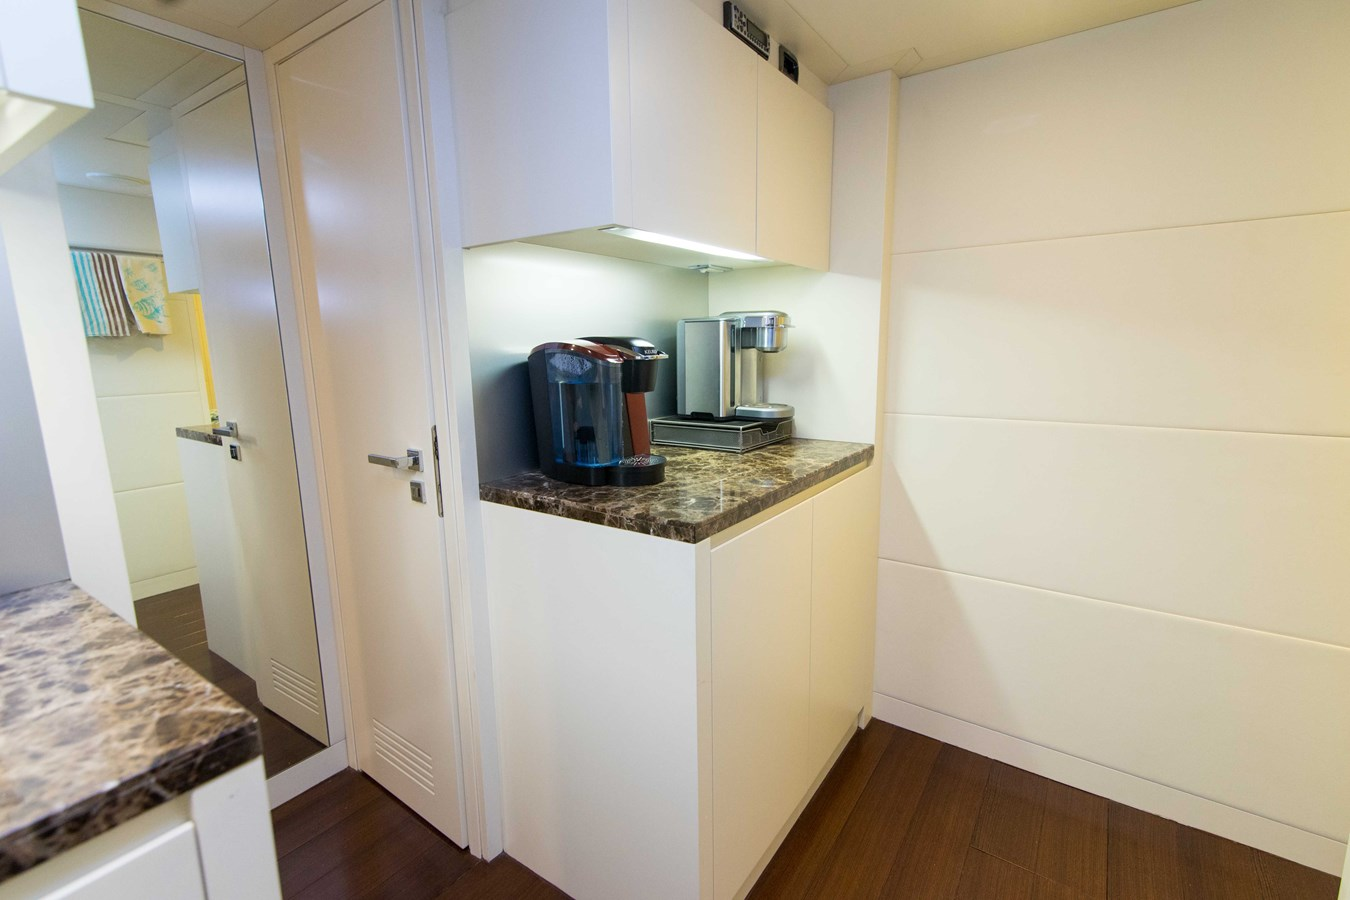 80 Pershing Galley - 80 PERSHING For Sale